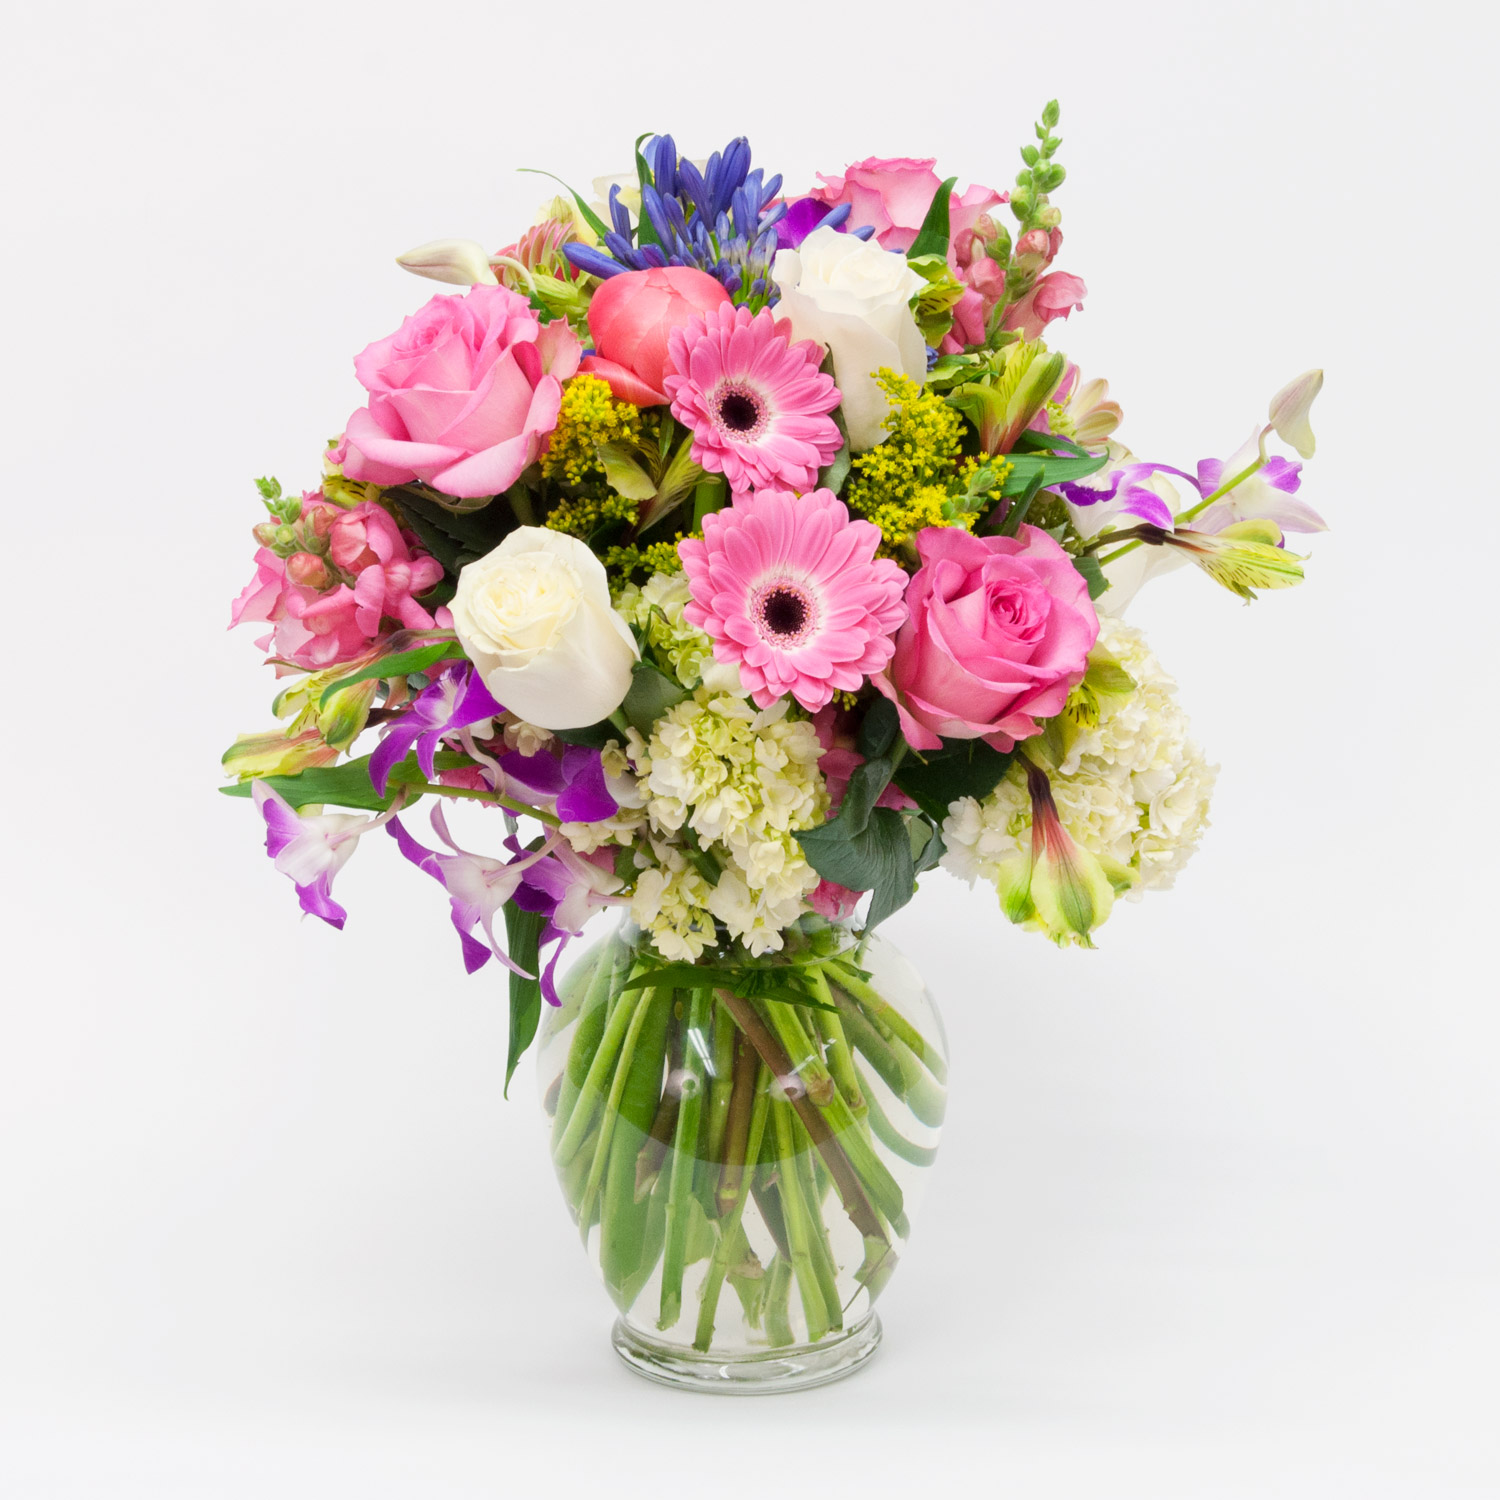 Mixed Flower Arrangement 2 - a lovely mix of fresh cut flowers, including gerbera daisies, roses, snaps, etc. arranged in a vase with beautiful greenery. ($120 and up)